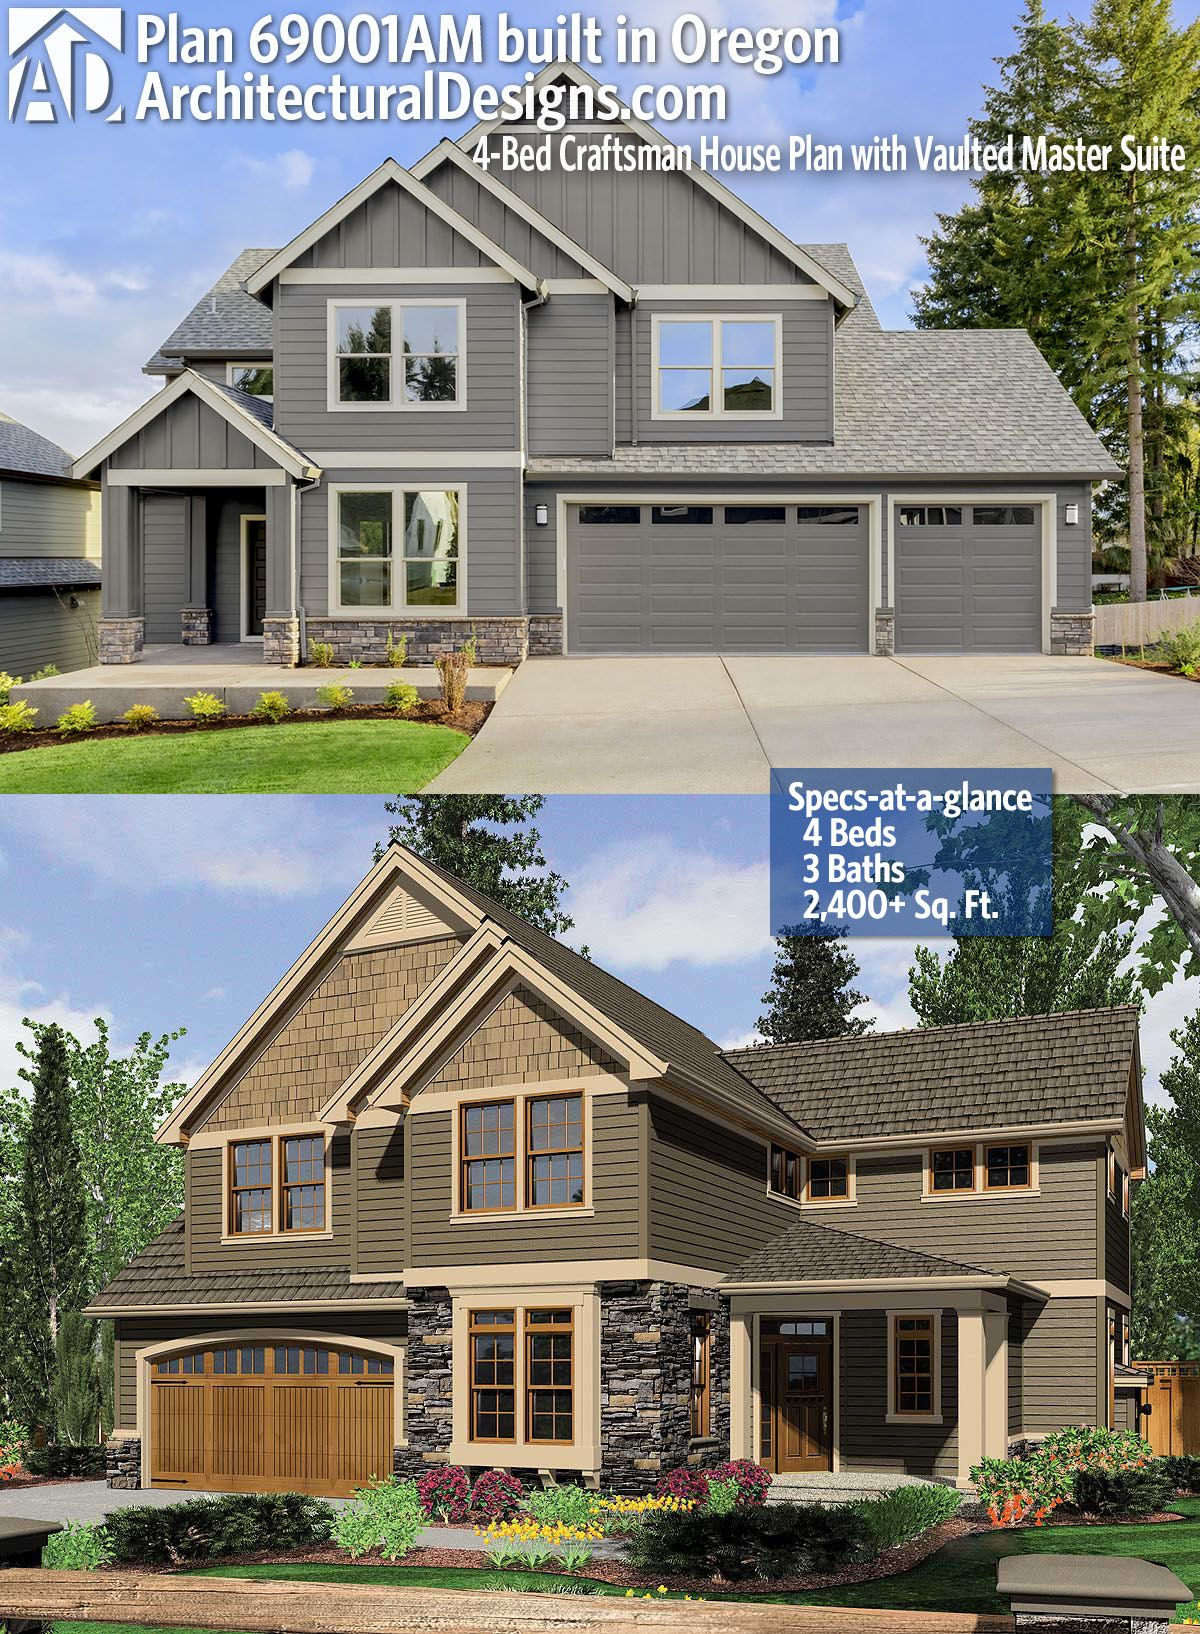 Plan 69001AM: 4-Bed Craftsman House Plan with Vaulted Master Suite on square foundation house plans, 2 beds house plans, single level house plans, southern house plans, 2400 sq foot home, 24 foot house plans, range house plans, 4 bedroom house plans, family living house plans, 2400 sf house plans, slab house plans, craftsman ranch house plans, 3 beds house plans, vinyl siding house plans, 2400 sq ft home building designs, 1900 sq foot house plans, 640 sq ft. house plans, two story house plans, 2400 sq ft garden,